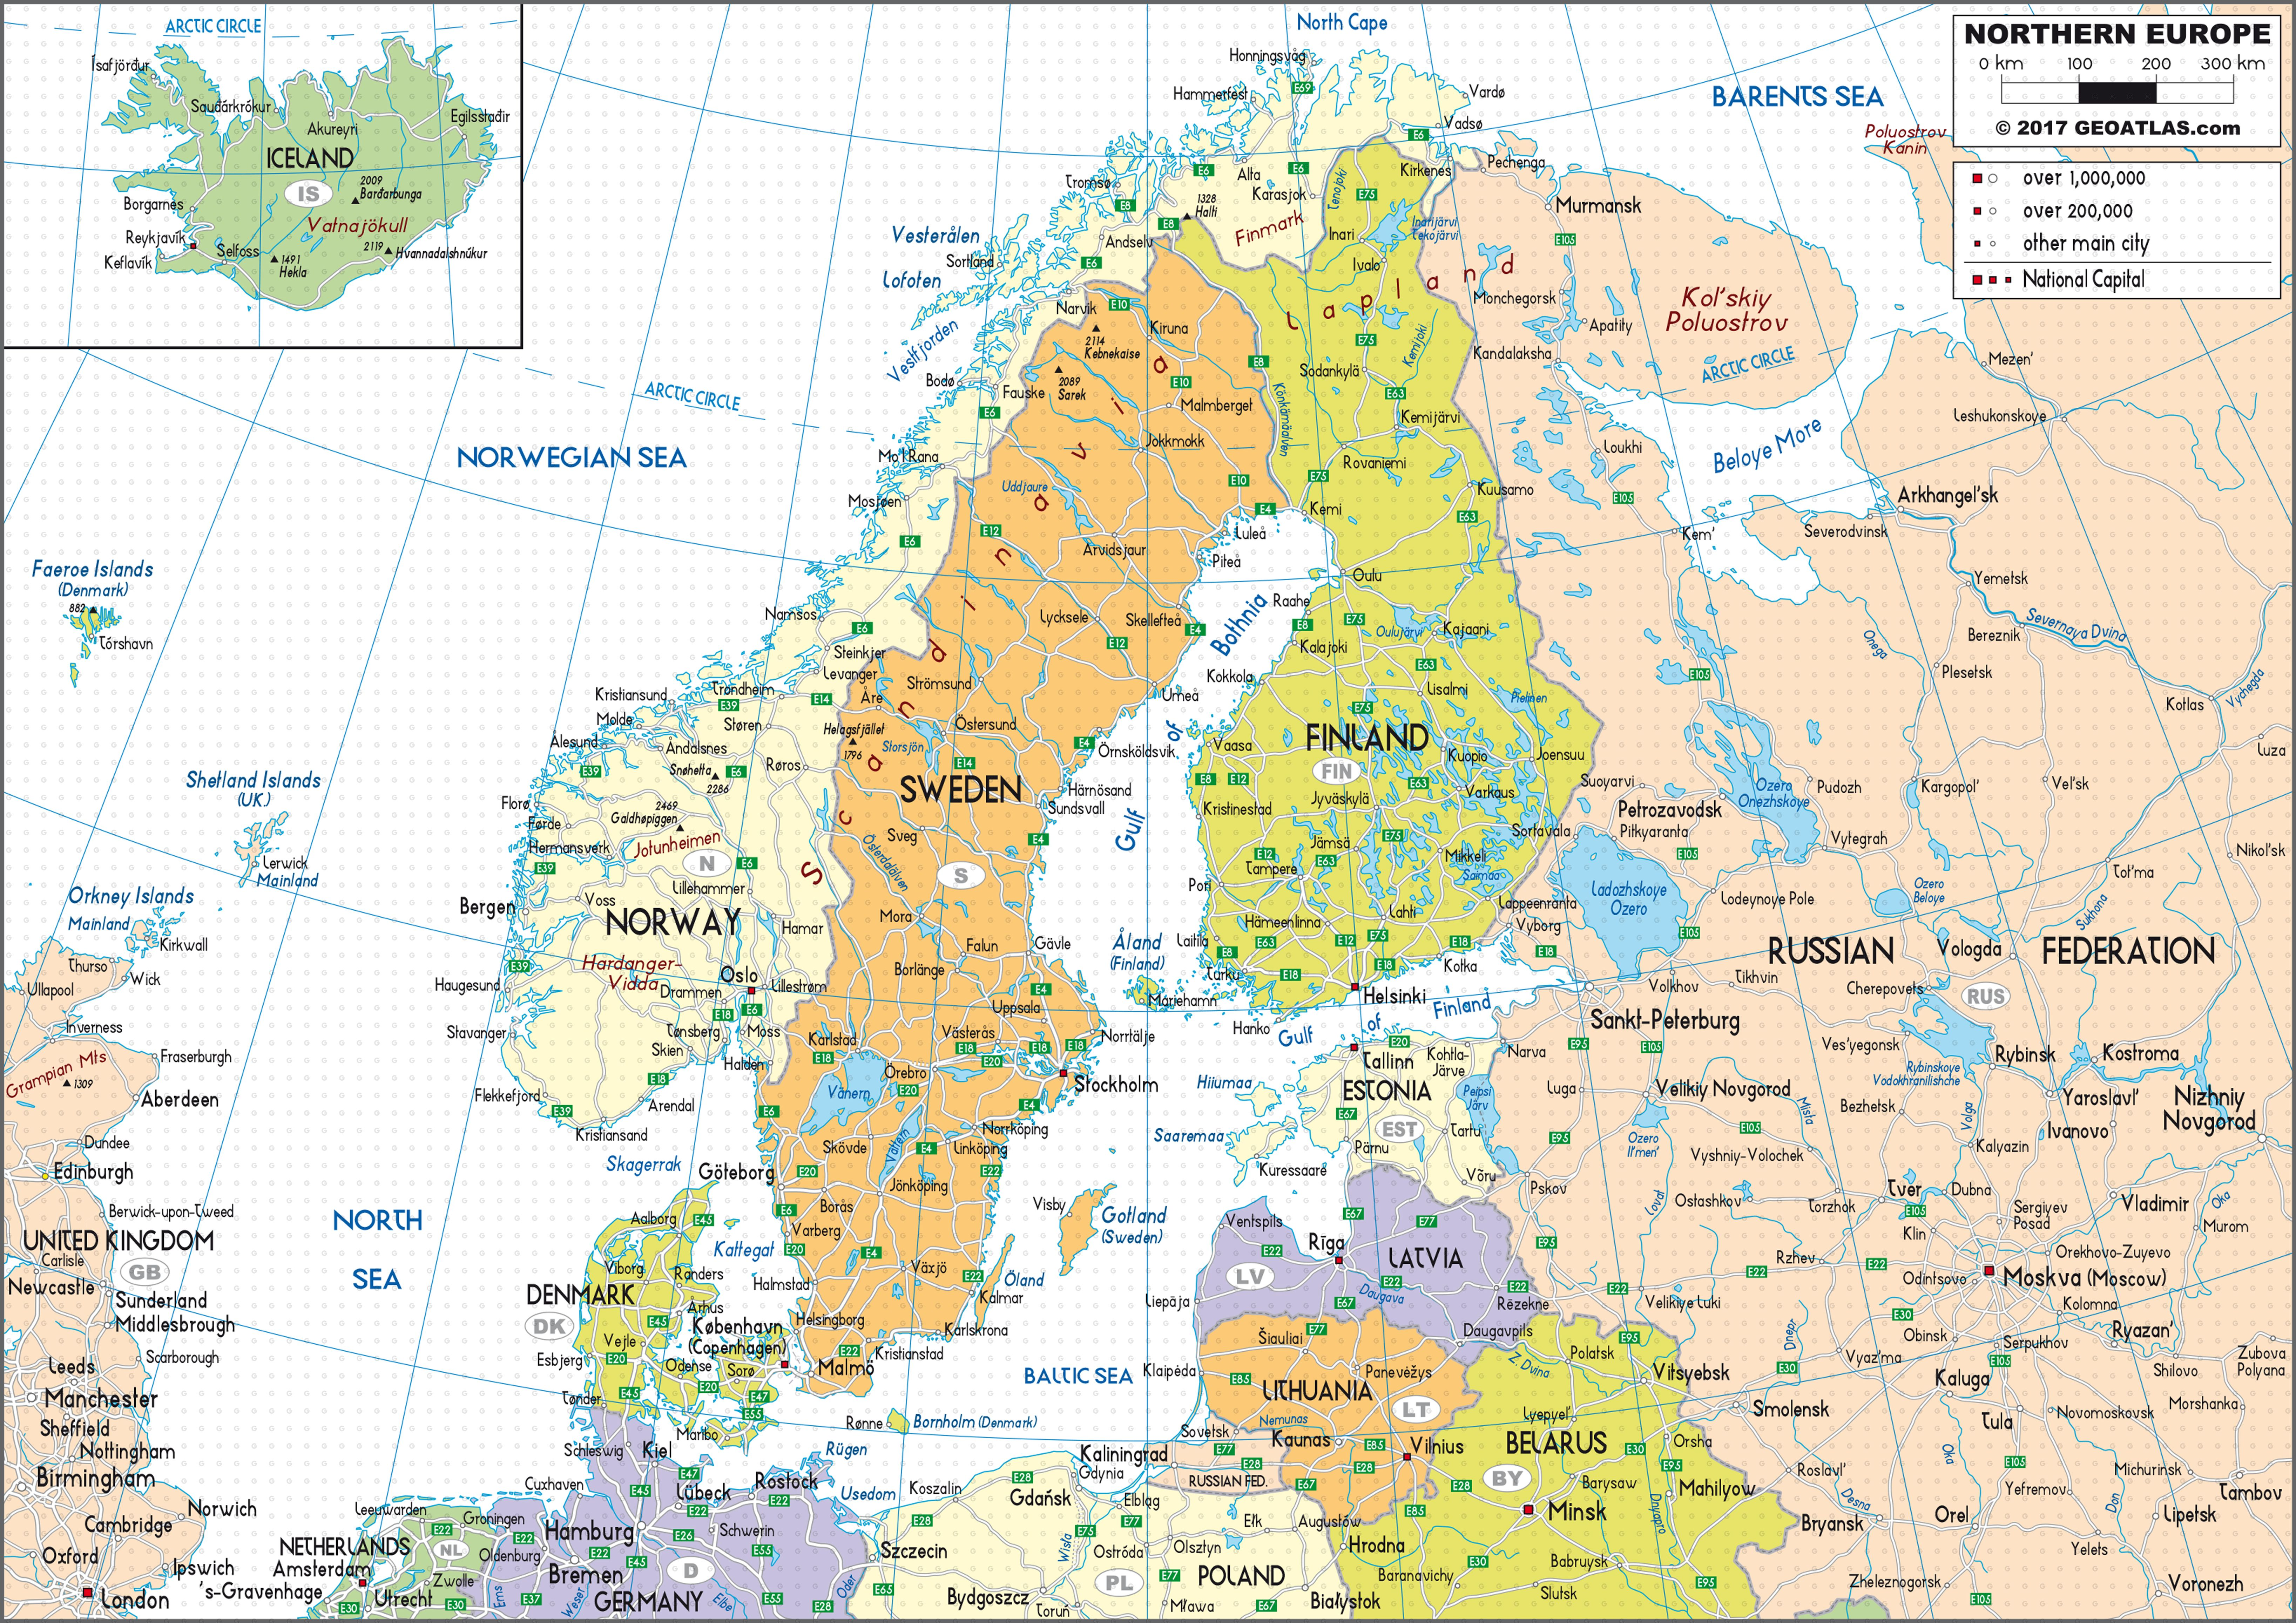 northern europes largest cin - HD1600×1130